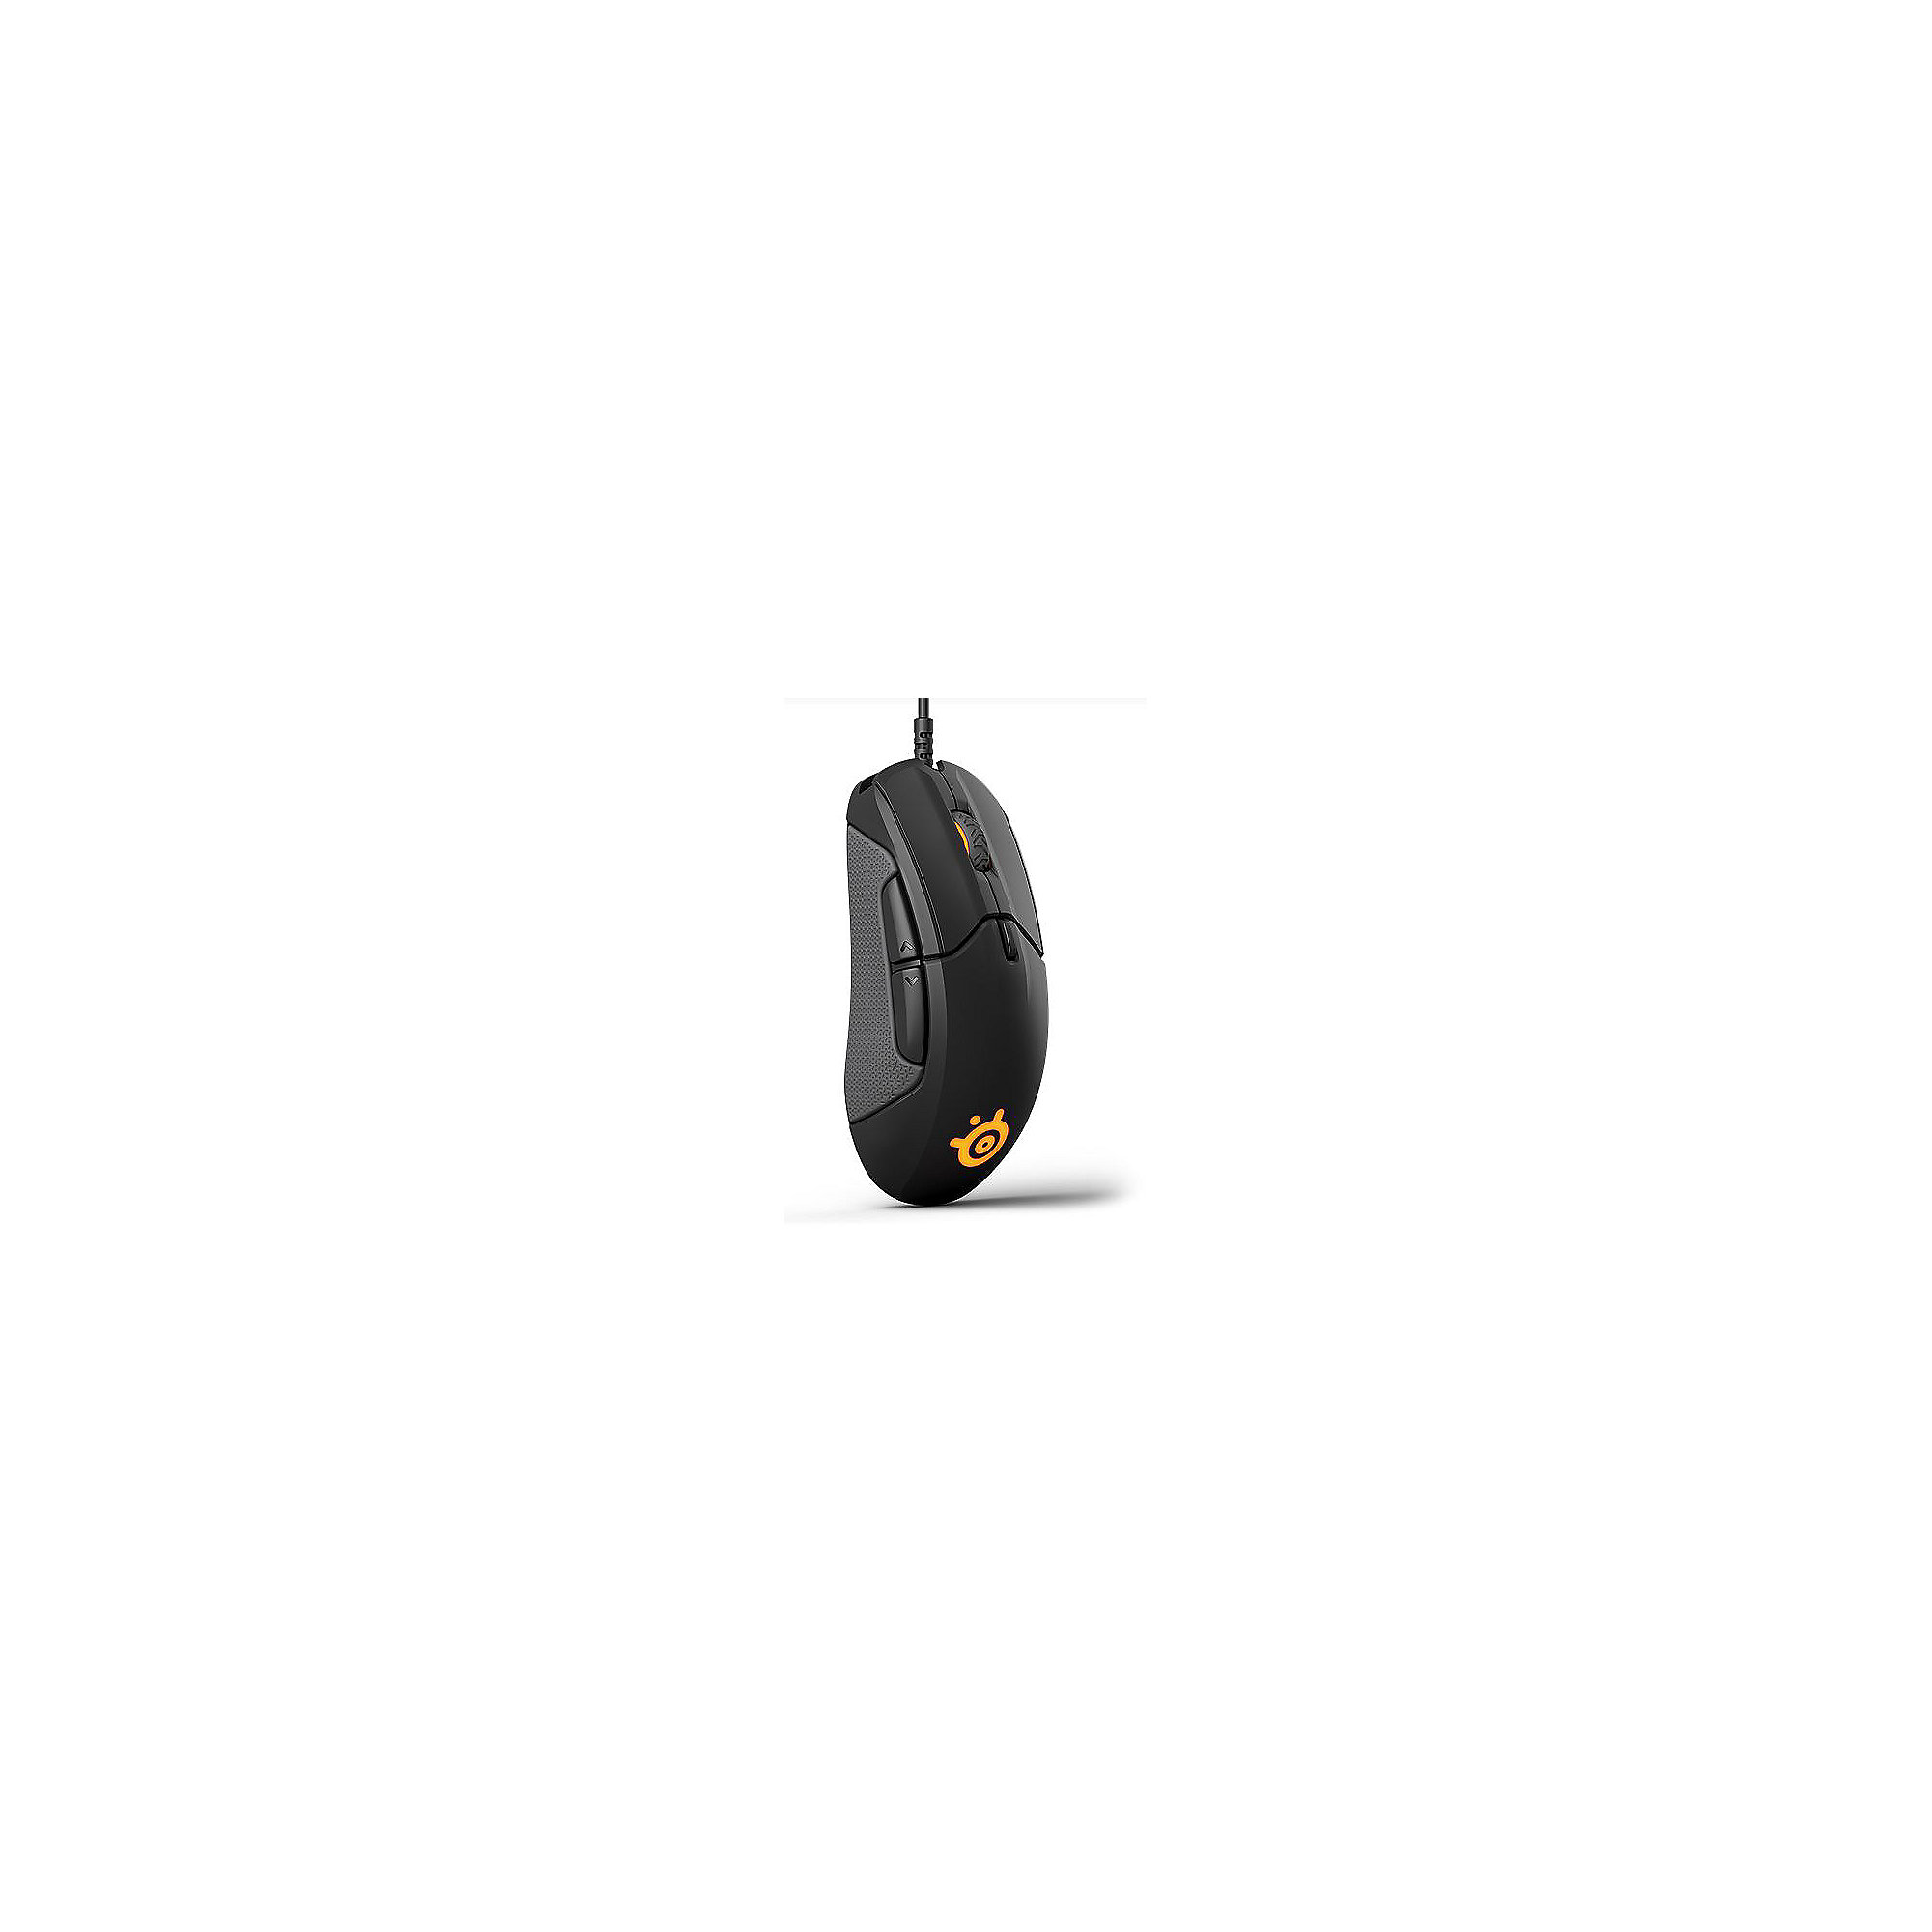 SteelSeries Rival 310 Gaming Maus schwarz